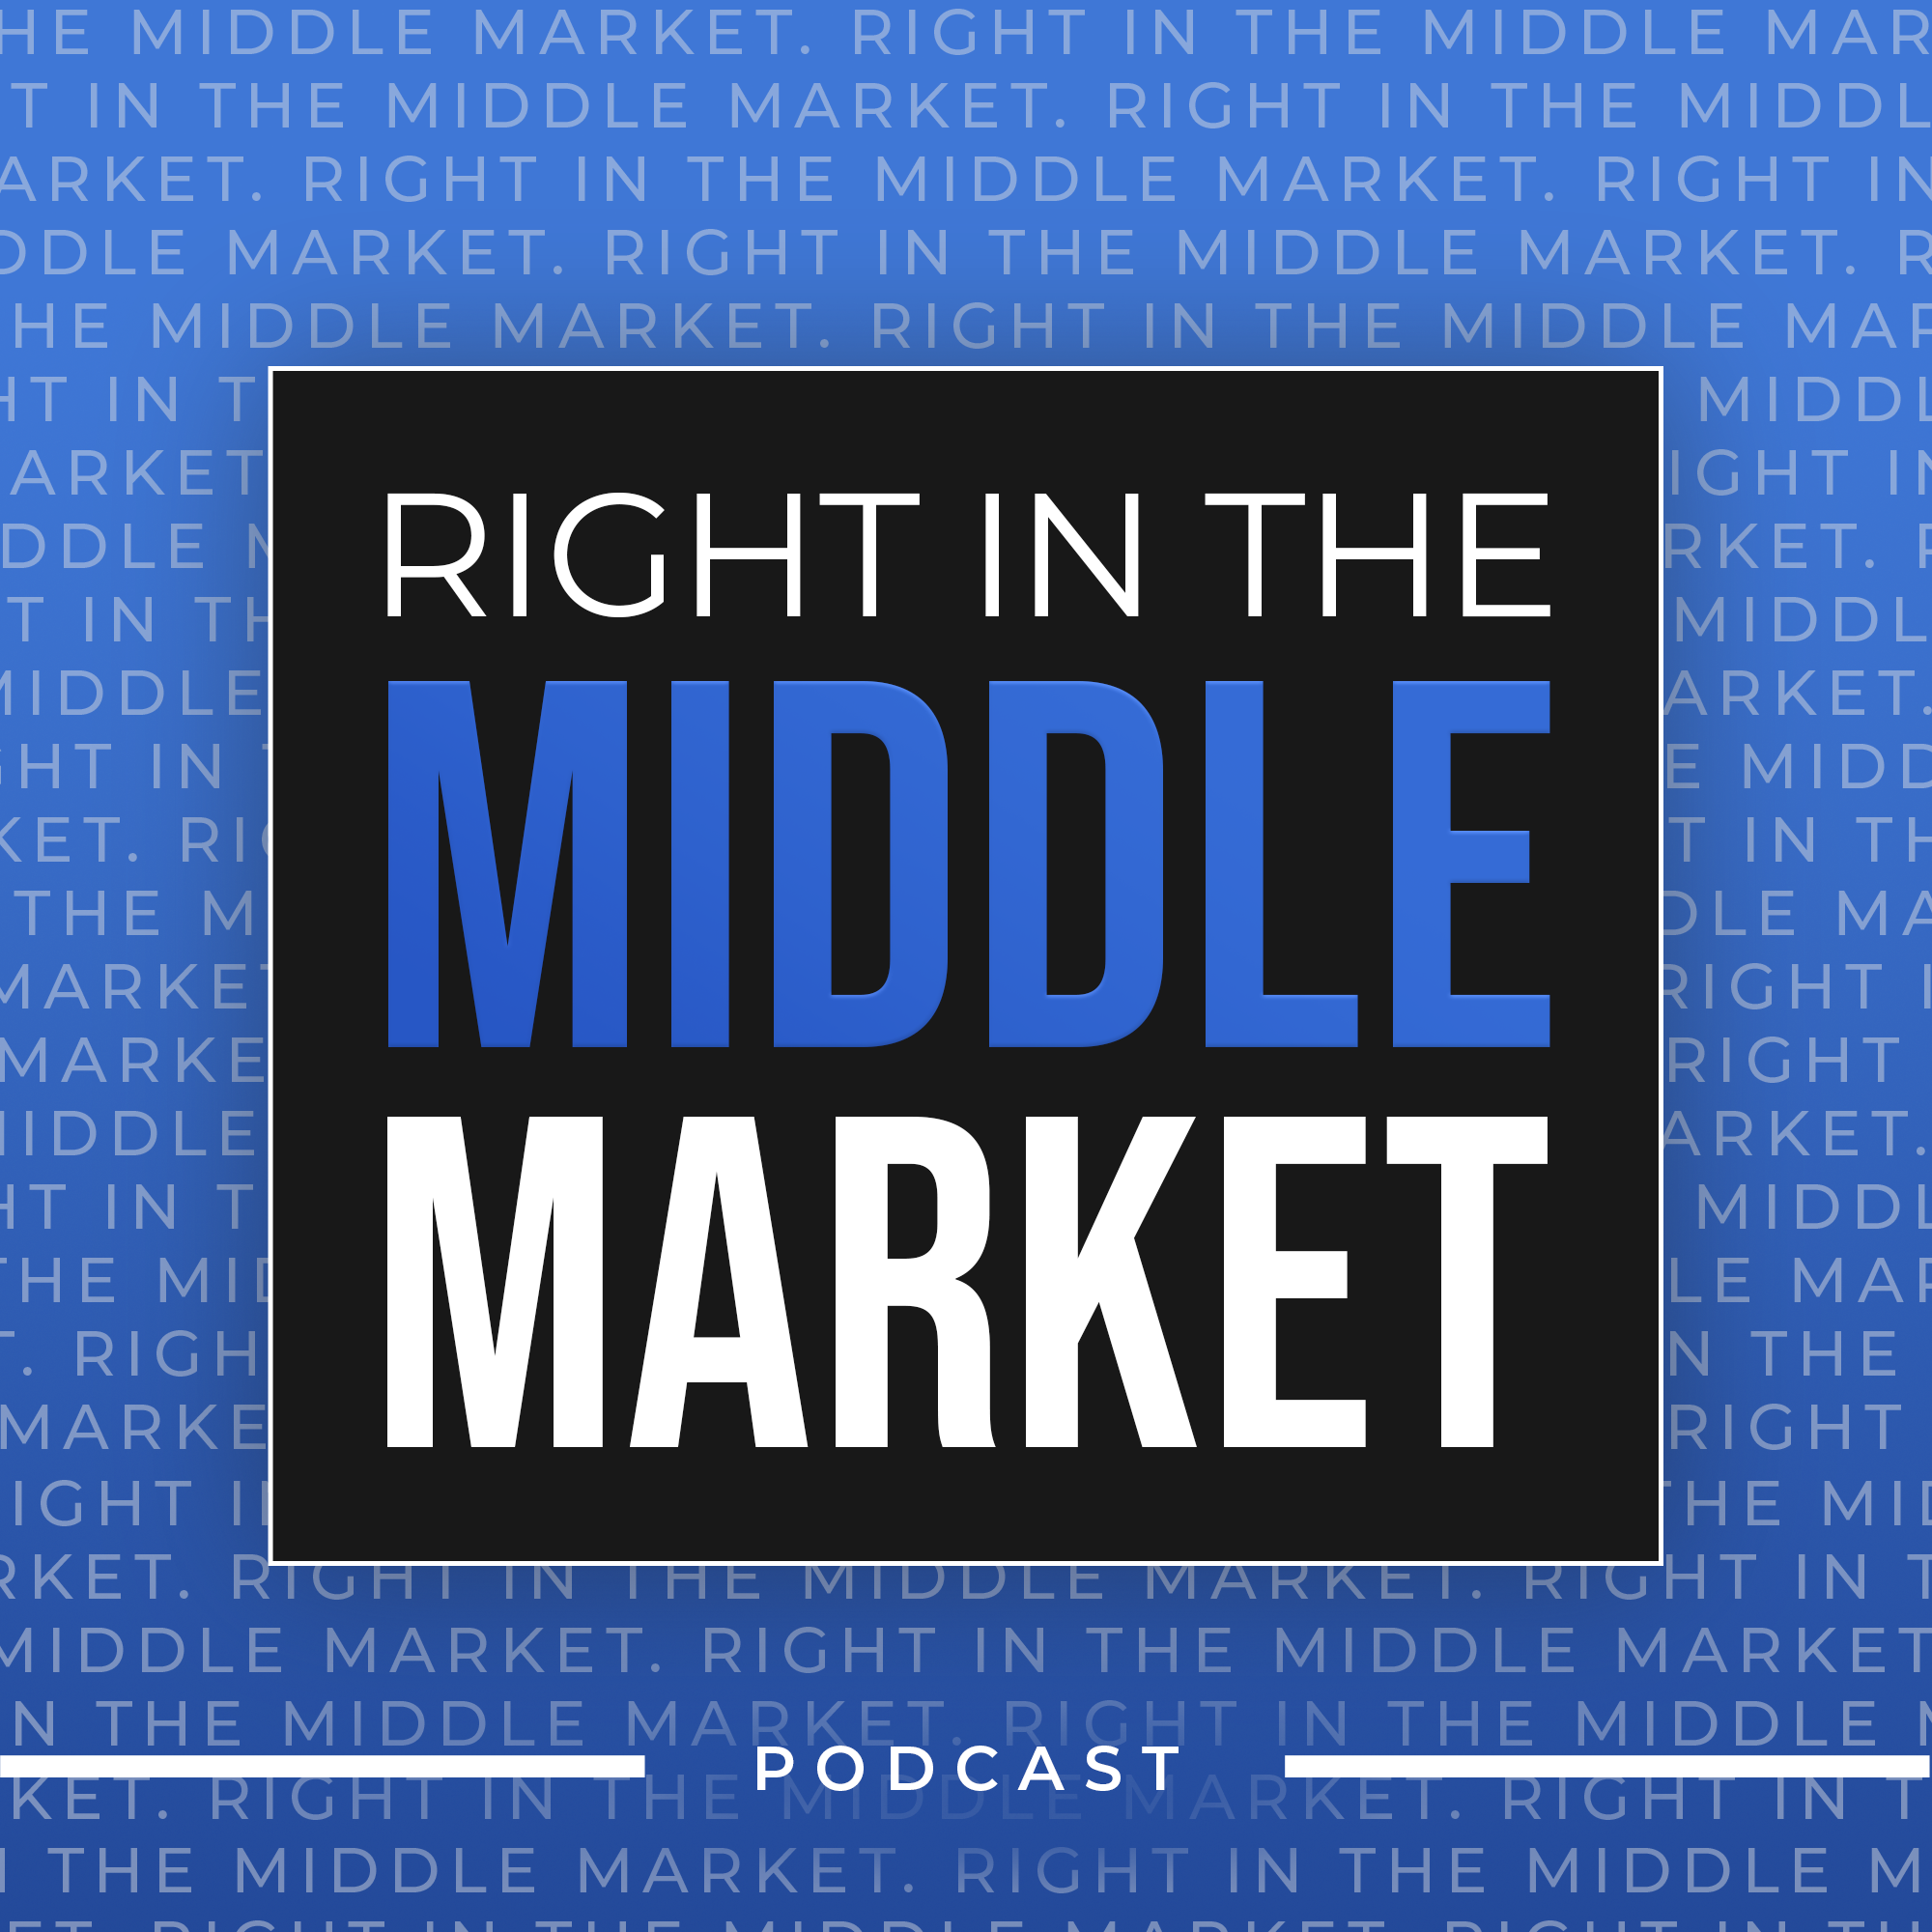 Right in the Middle Market Logo